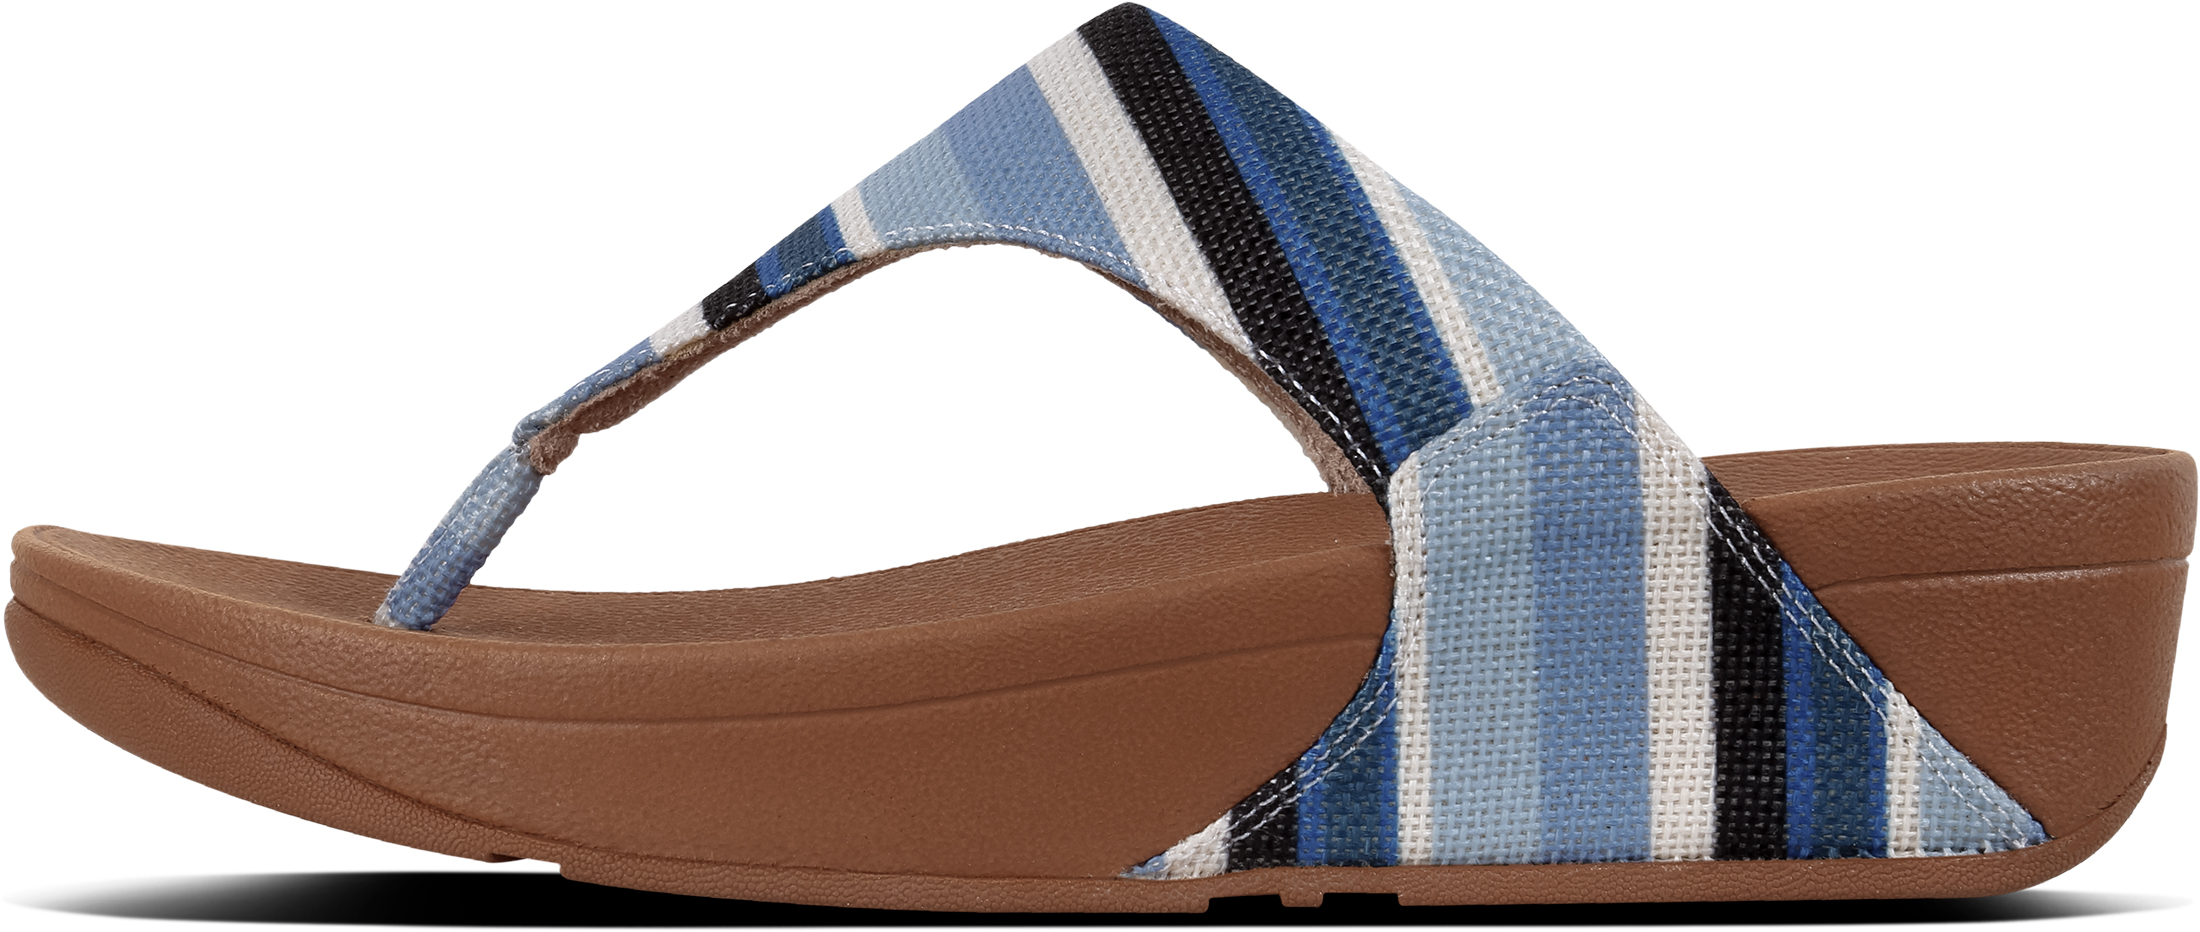 70ec2840e51992 FitFlop Women s Lulu Canvas Toe-thong Sandals Uk4 Blue Stripey. About this  product. Picture 1 of 4  Picture 2 of 4  Picture 3 of 4  Picture 4 of 4